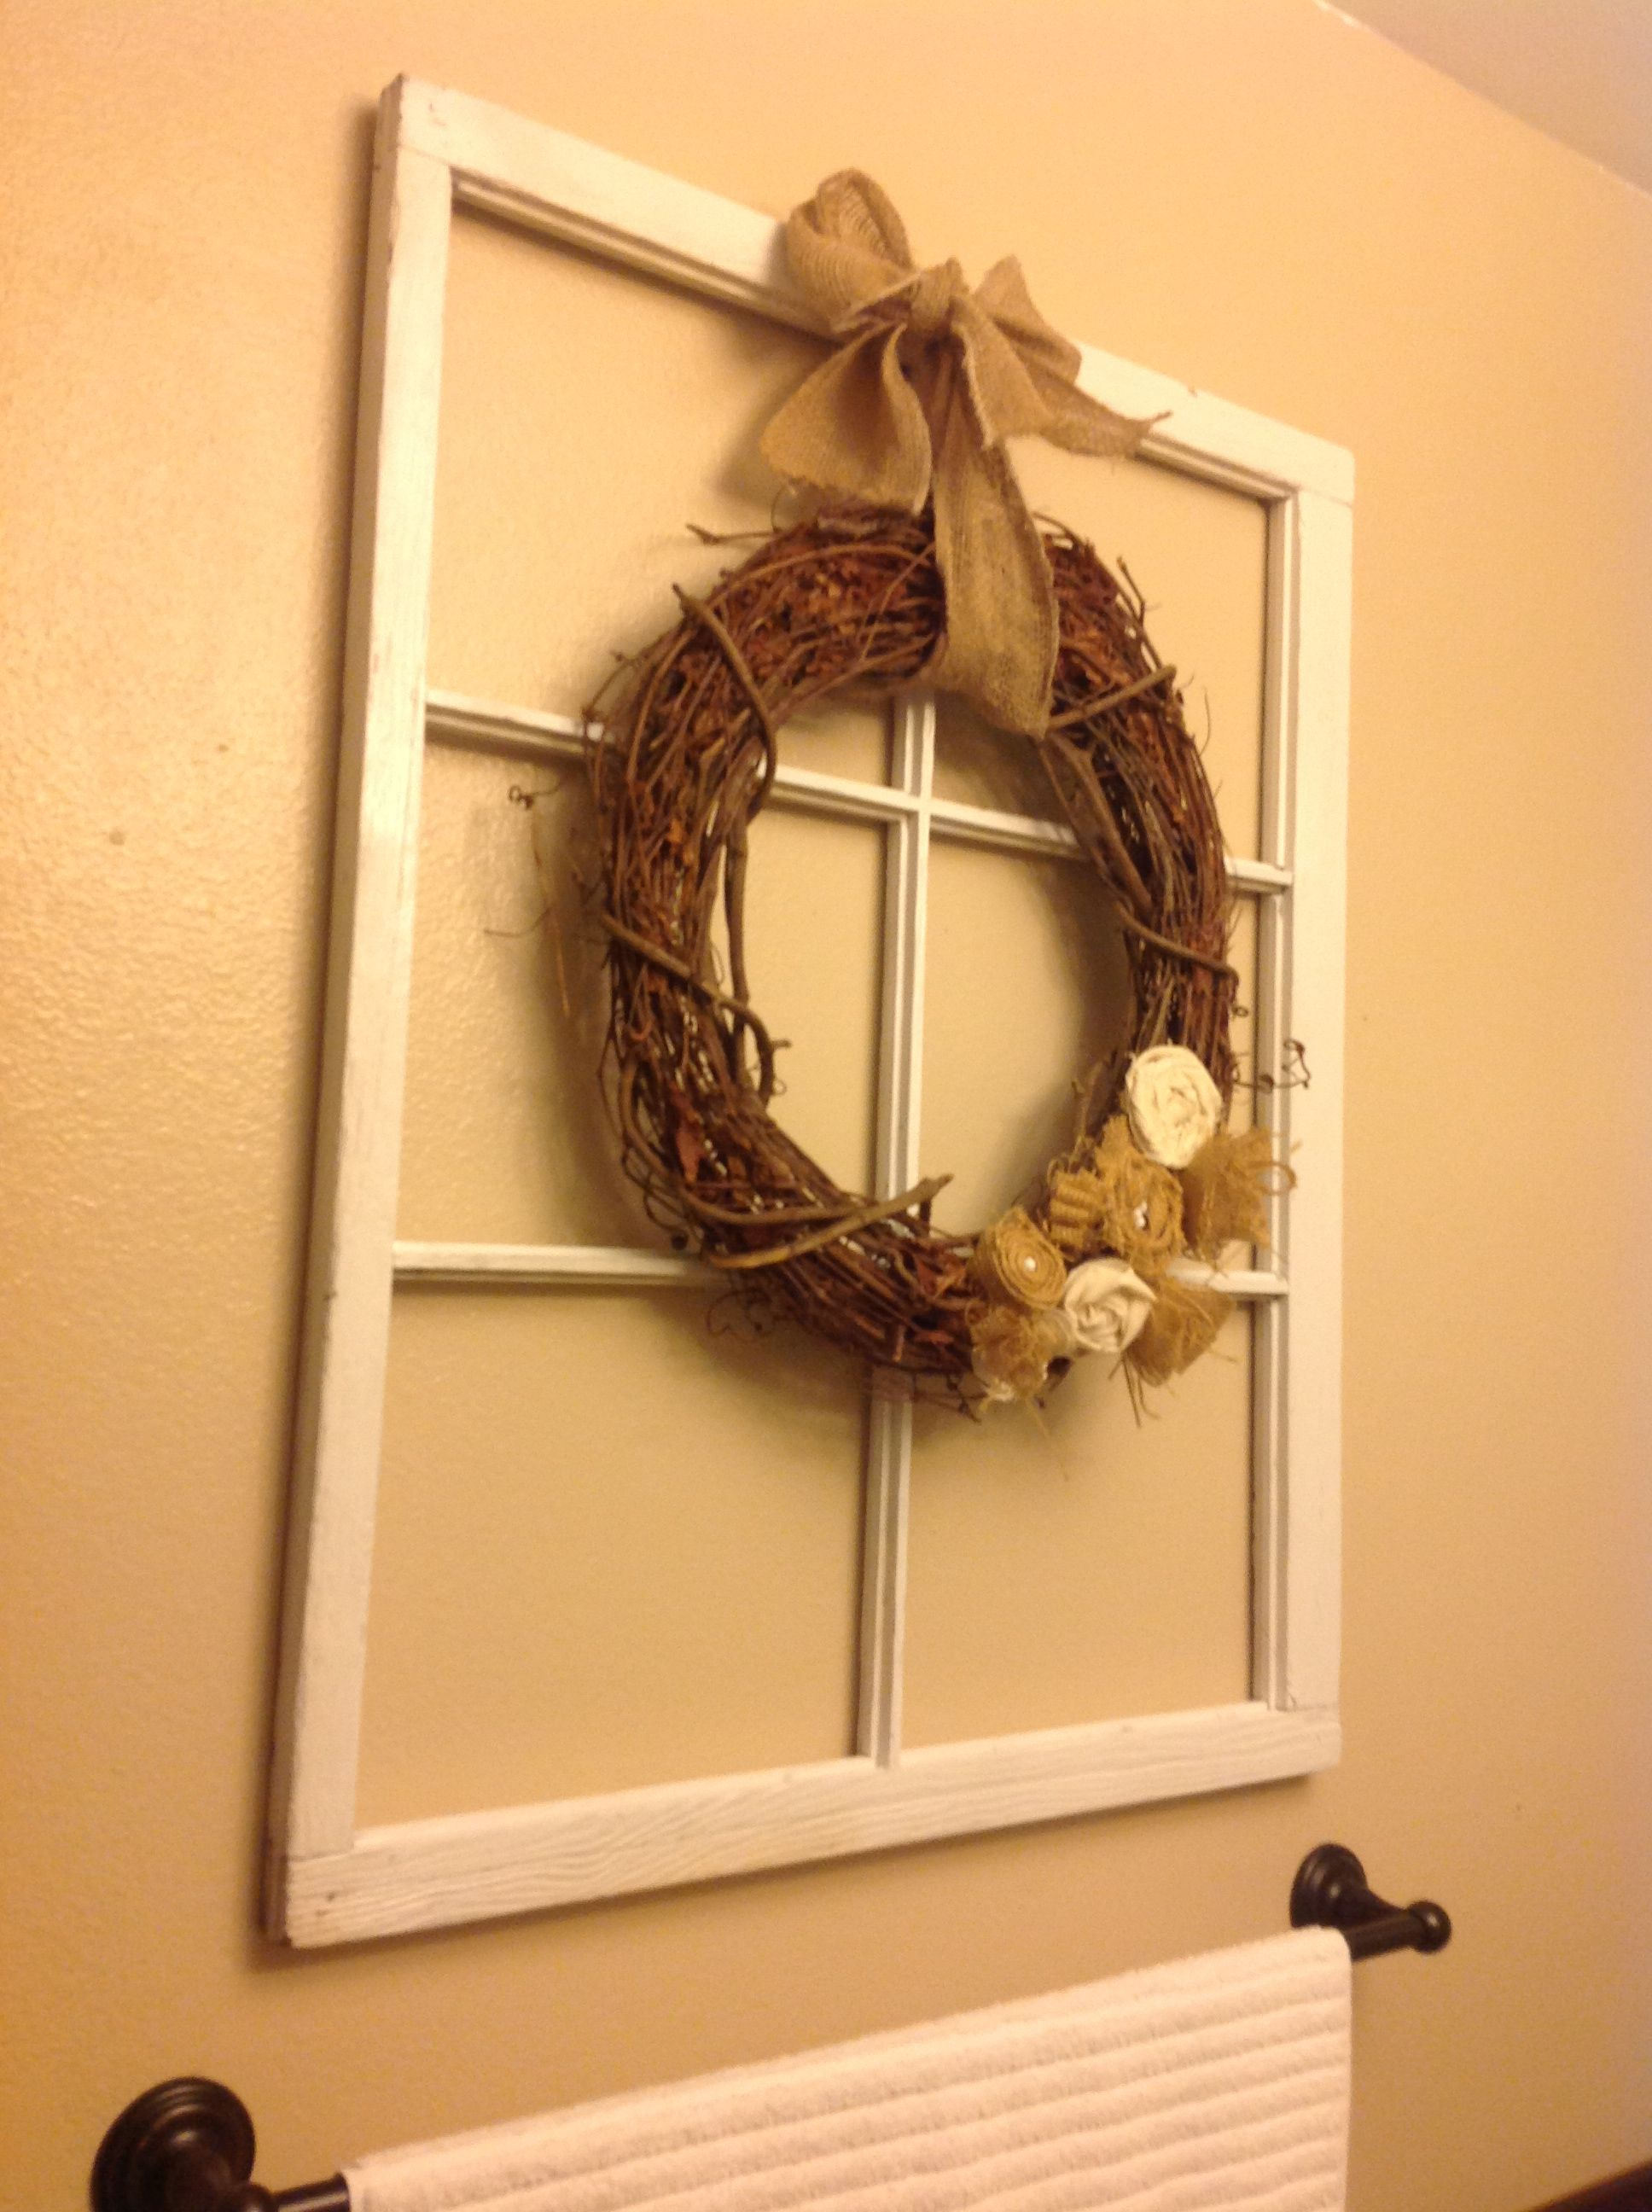 Window decor with wreath  diy burlap wreath on old window frame  diy  pinterest  diy